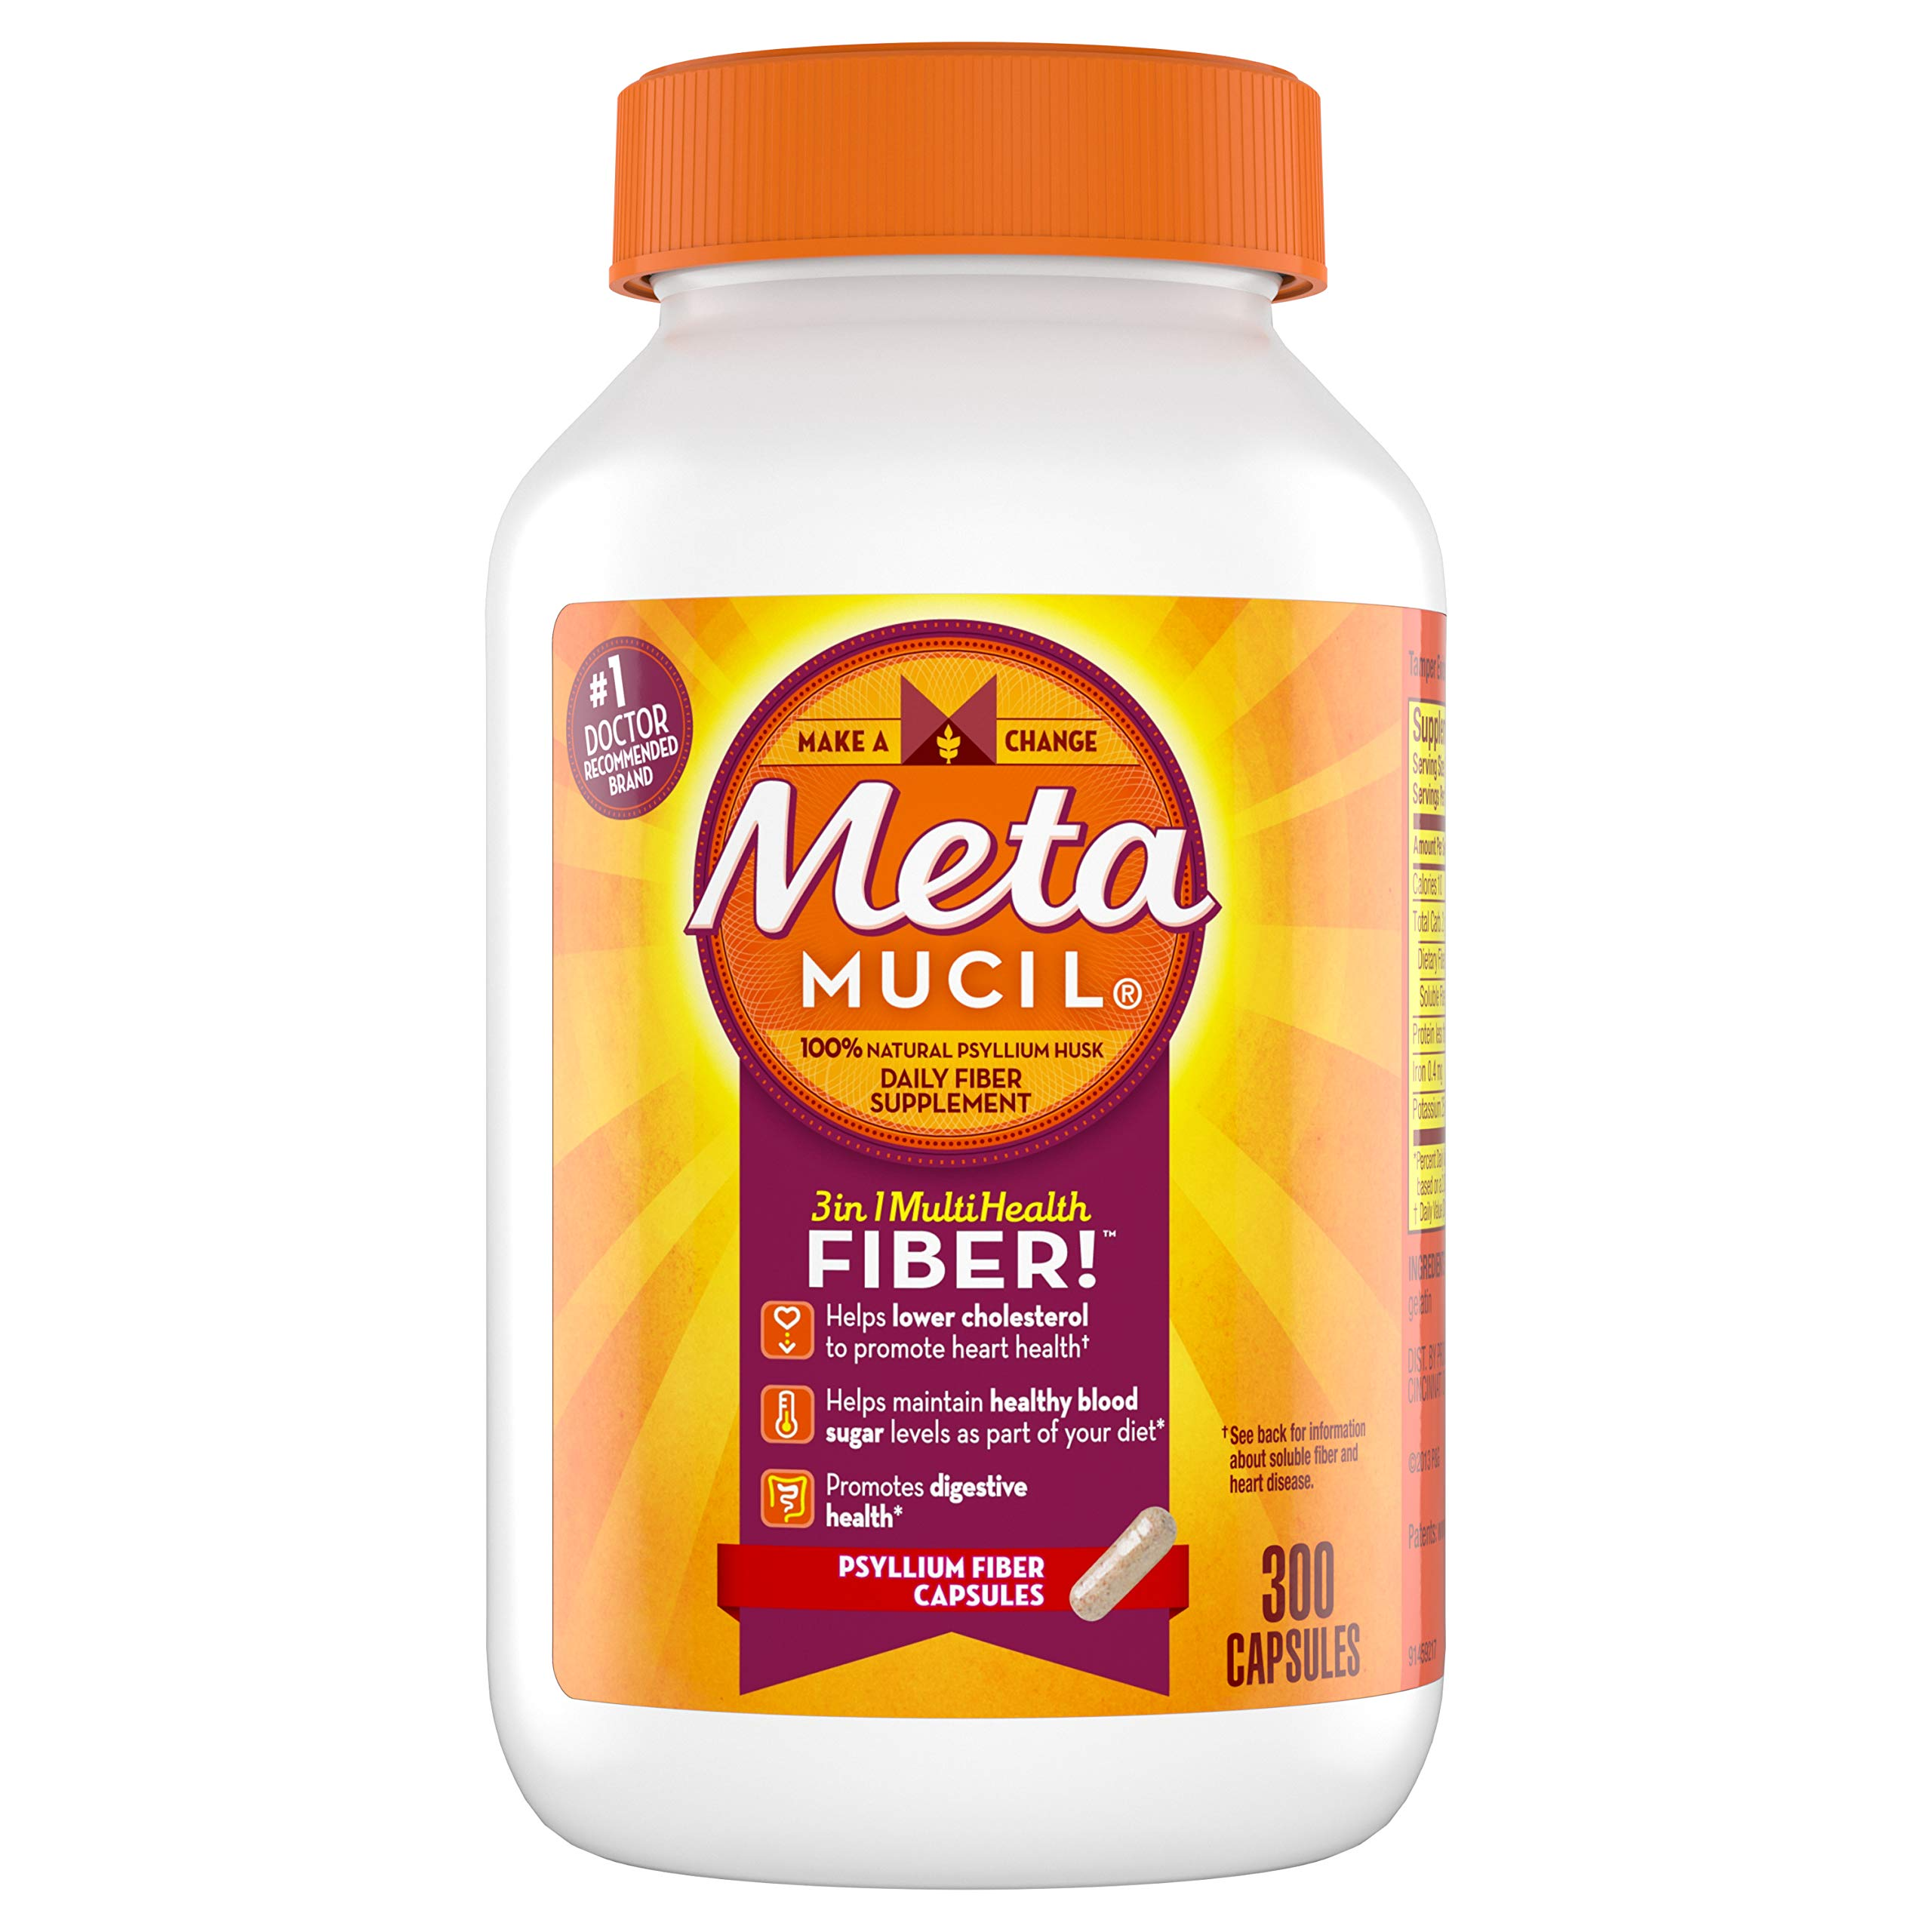 Amazon.com: Metamucil Multi-Health Psyllium Fiber Supplement Sugar-Free Powder, Orange Flavored ...